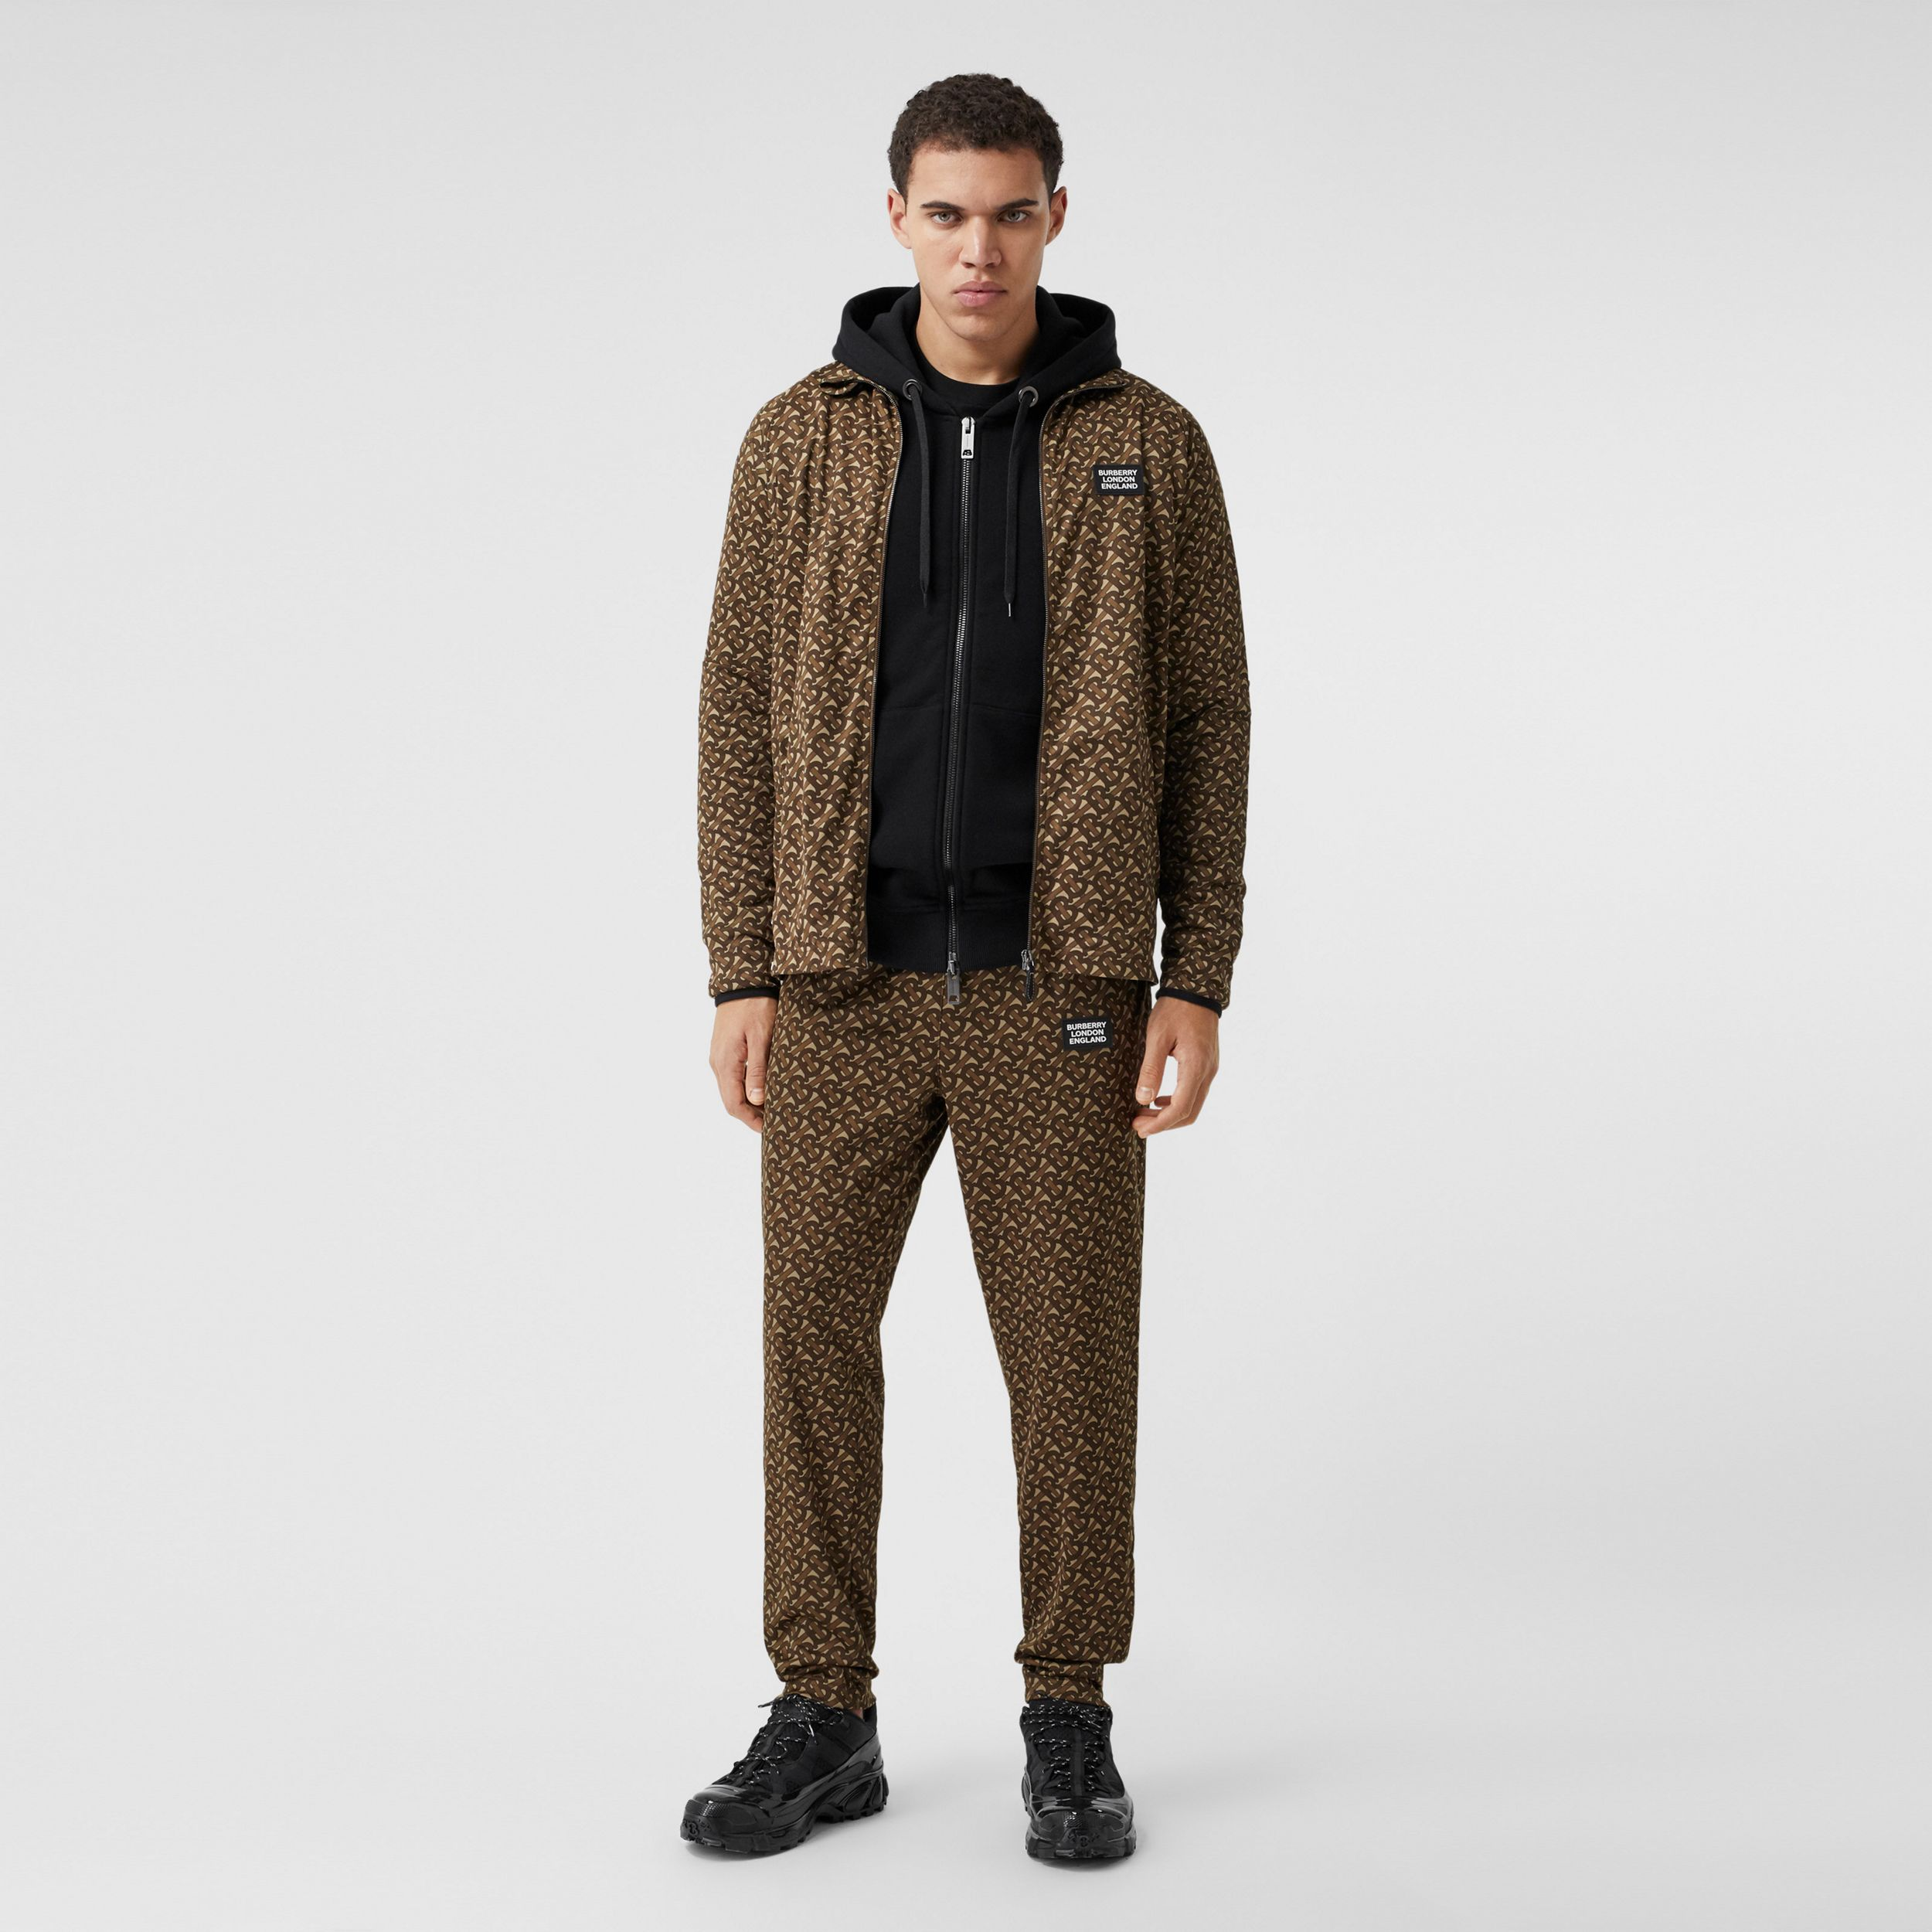 Monogram Print Technical Twill Jogging Pants in Bridle Brown - Men | Burberry - 1